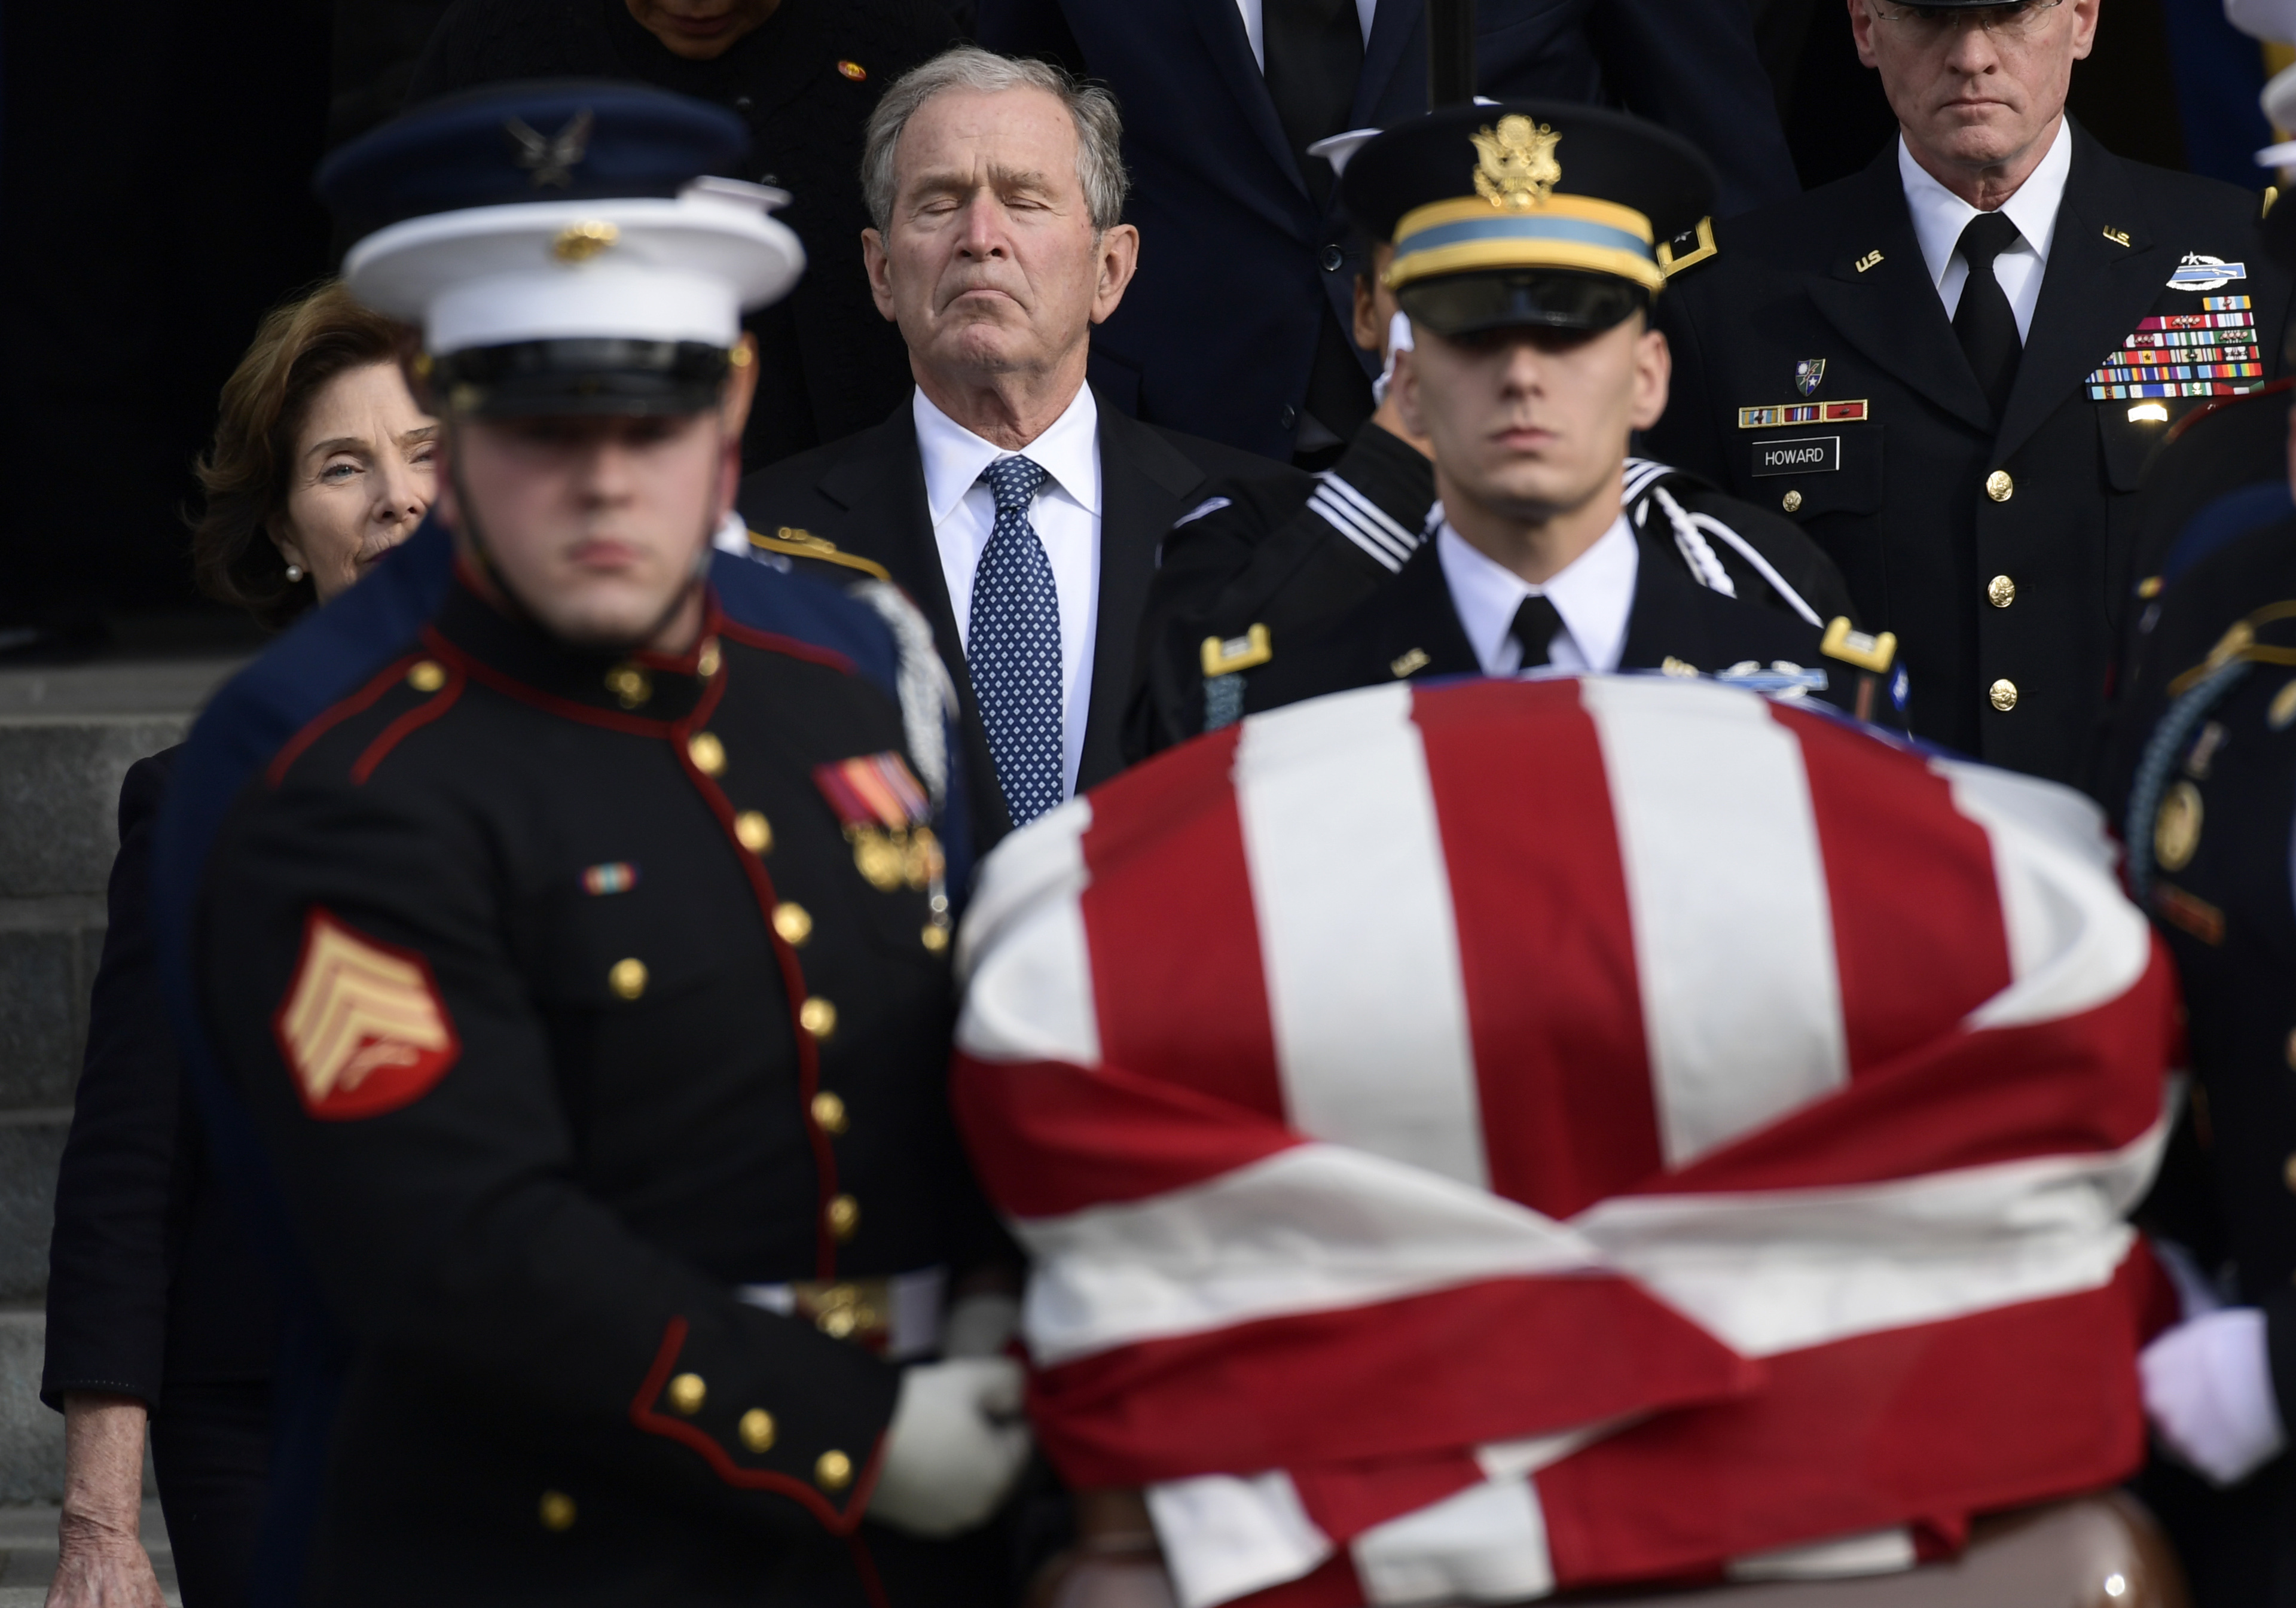 Former President George W. Bush and former first lady Laura Bush, left, follow the casket of former President George H.W. Bush as it is carried out following a State Funeral at the National Cathedral in Washington, Wednesday, Dec. 5, 2018.(AP Photo/Susan Walsh)